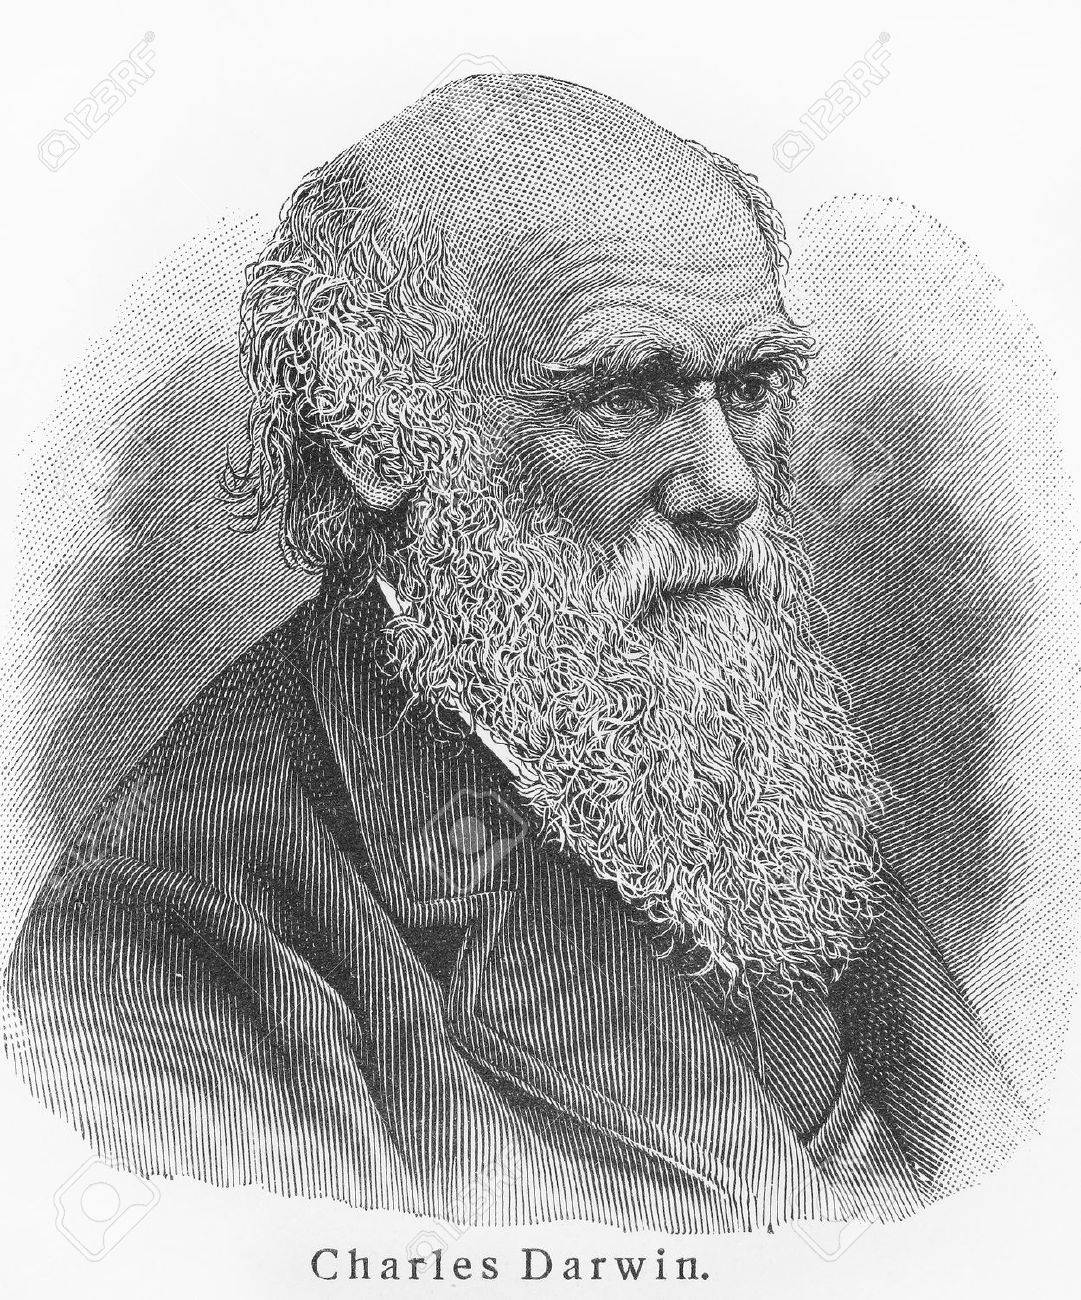 Charles Darwin - Picture from Meyers Lexicon books written in German language. Collection of 21 volumes published between 1905 and 1909.  Stock Photo - 11259821